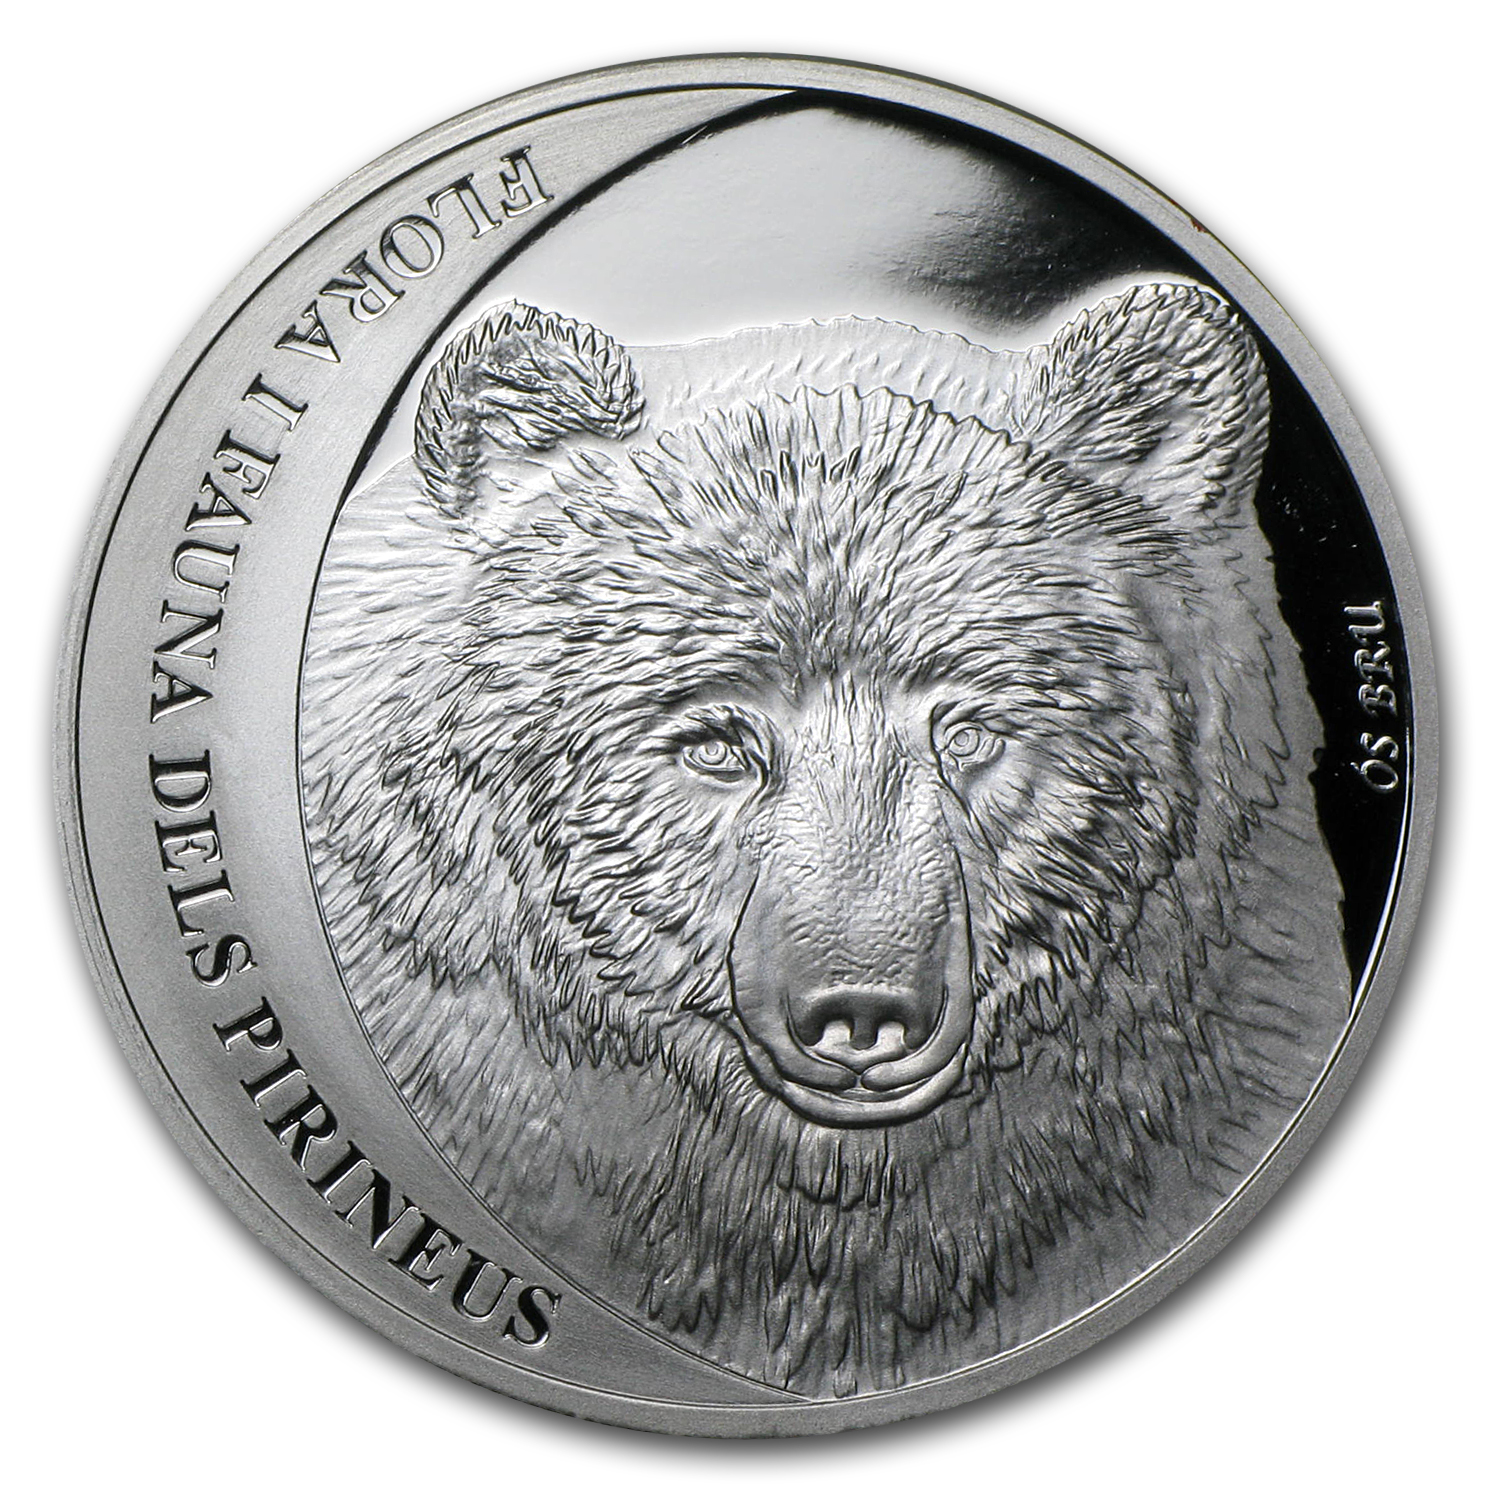 Andorra 2010 Proof Silver 5 Diners Cantabrian Brown Bear